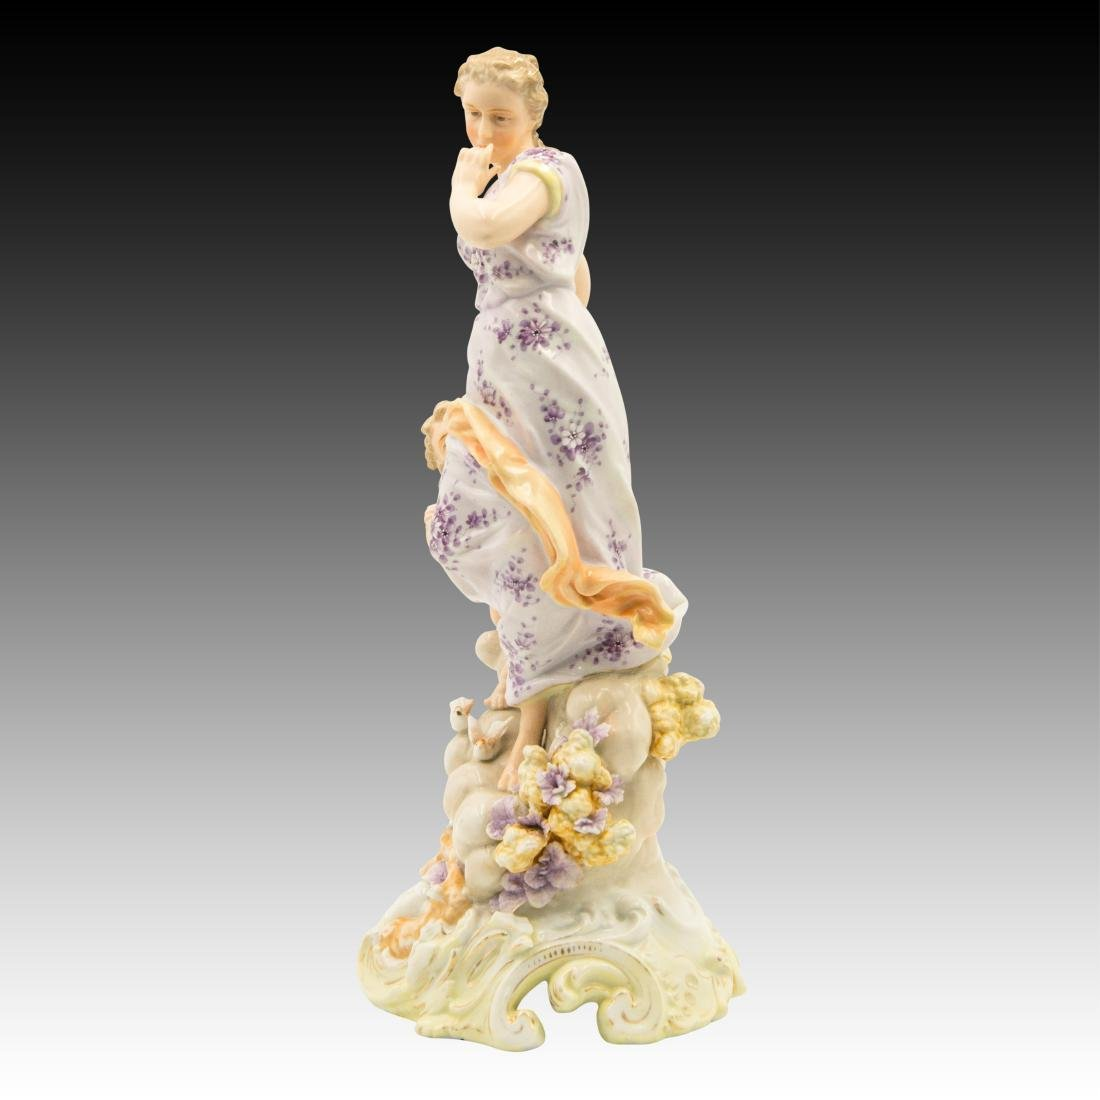 Young Woman on a Cloud with a Cherub Figurine - 2